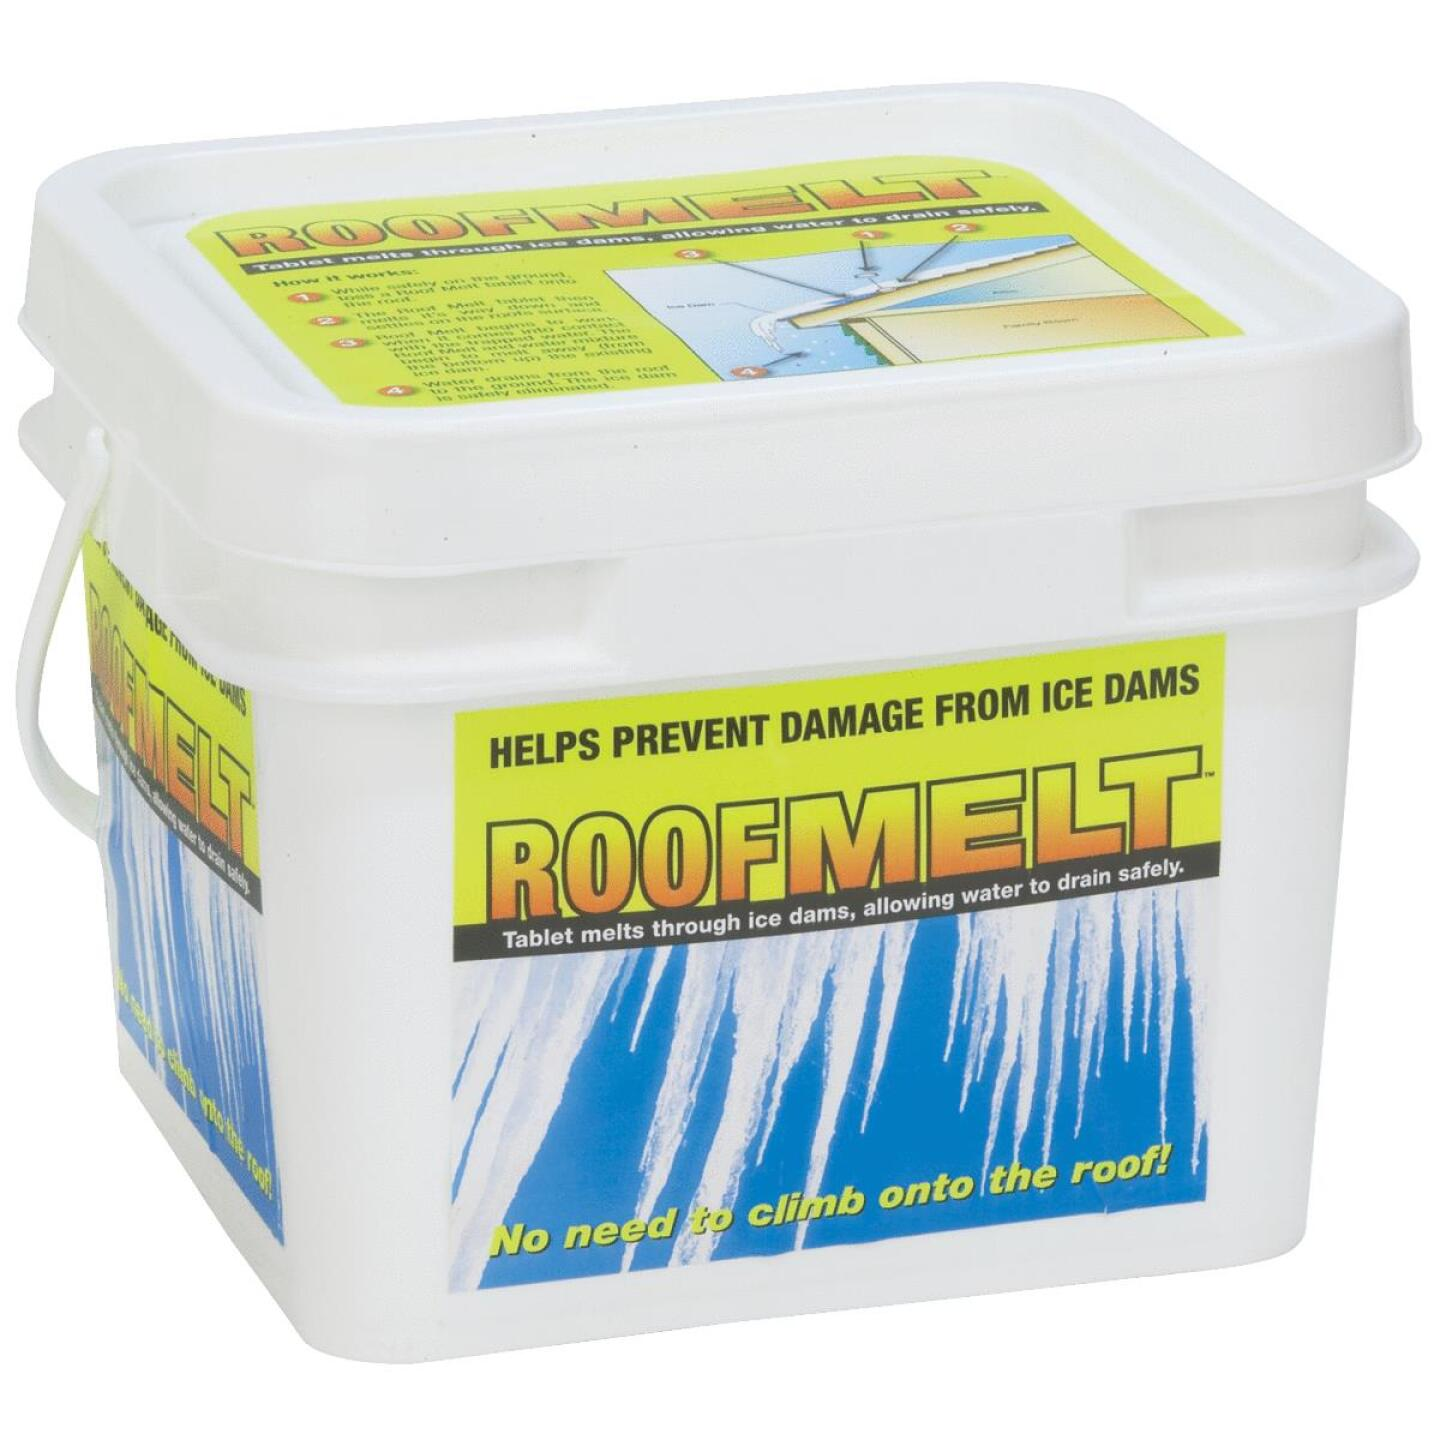 RoofMelt 14 Lb. Roof Ice Melt Tablets (65-Pack) Image 1